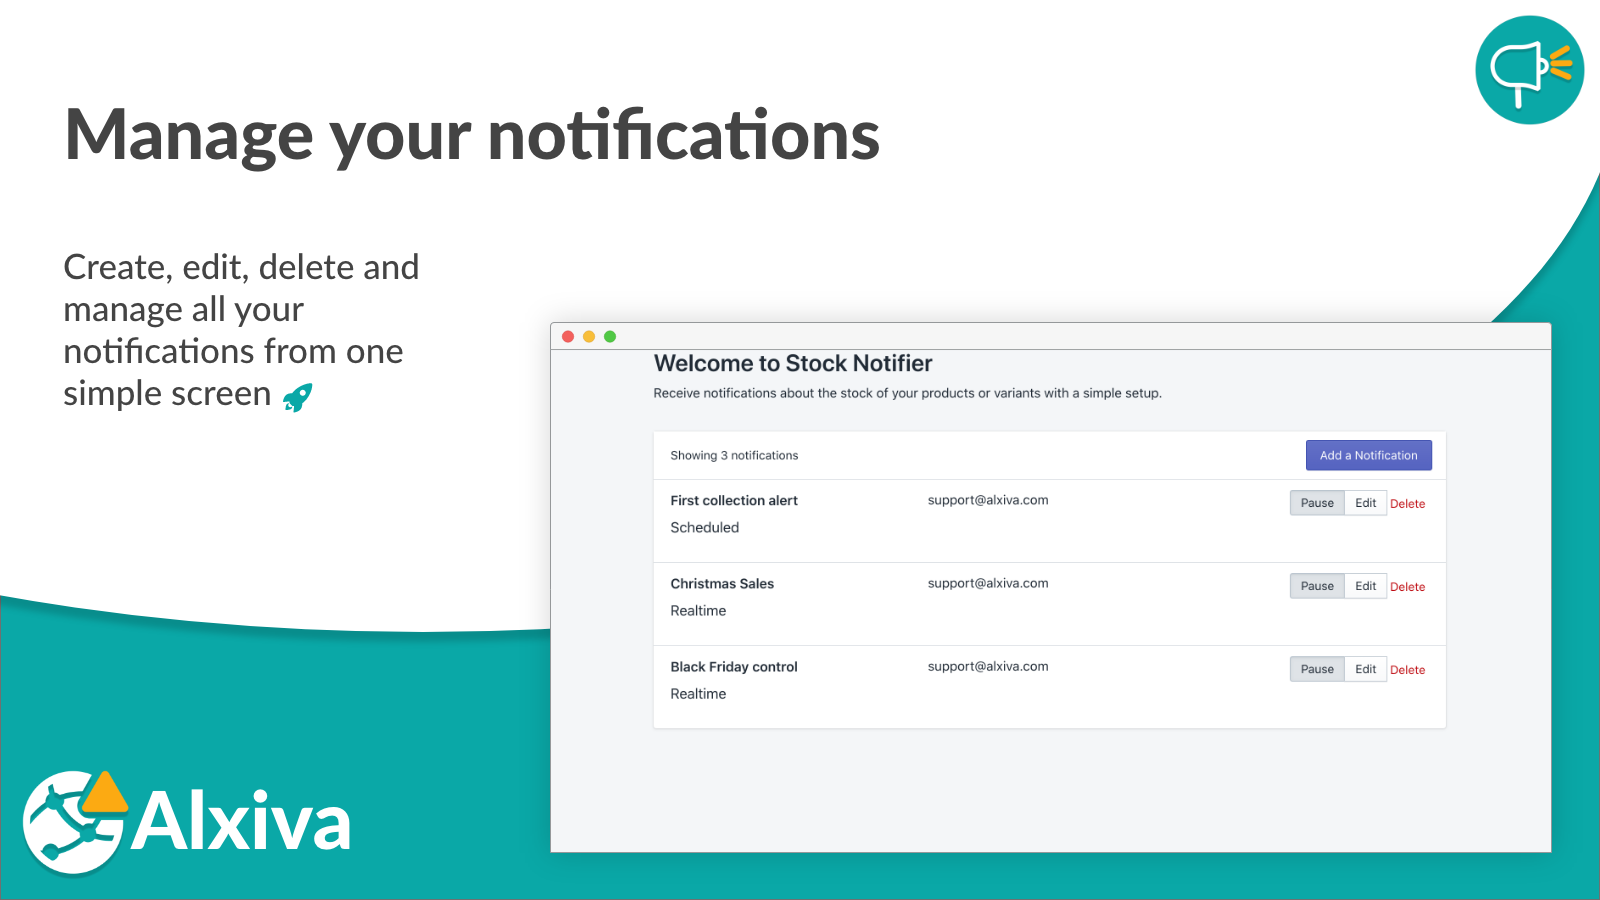 Manage your notifications